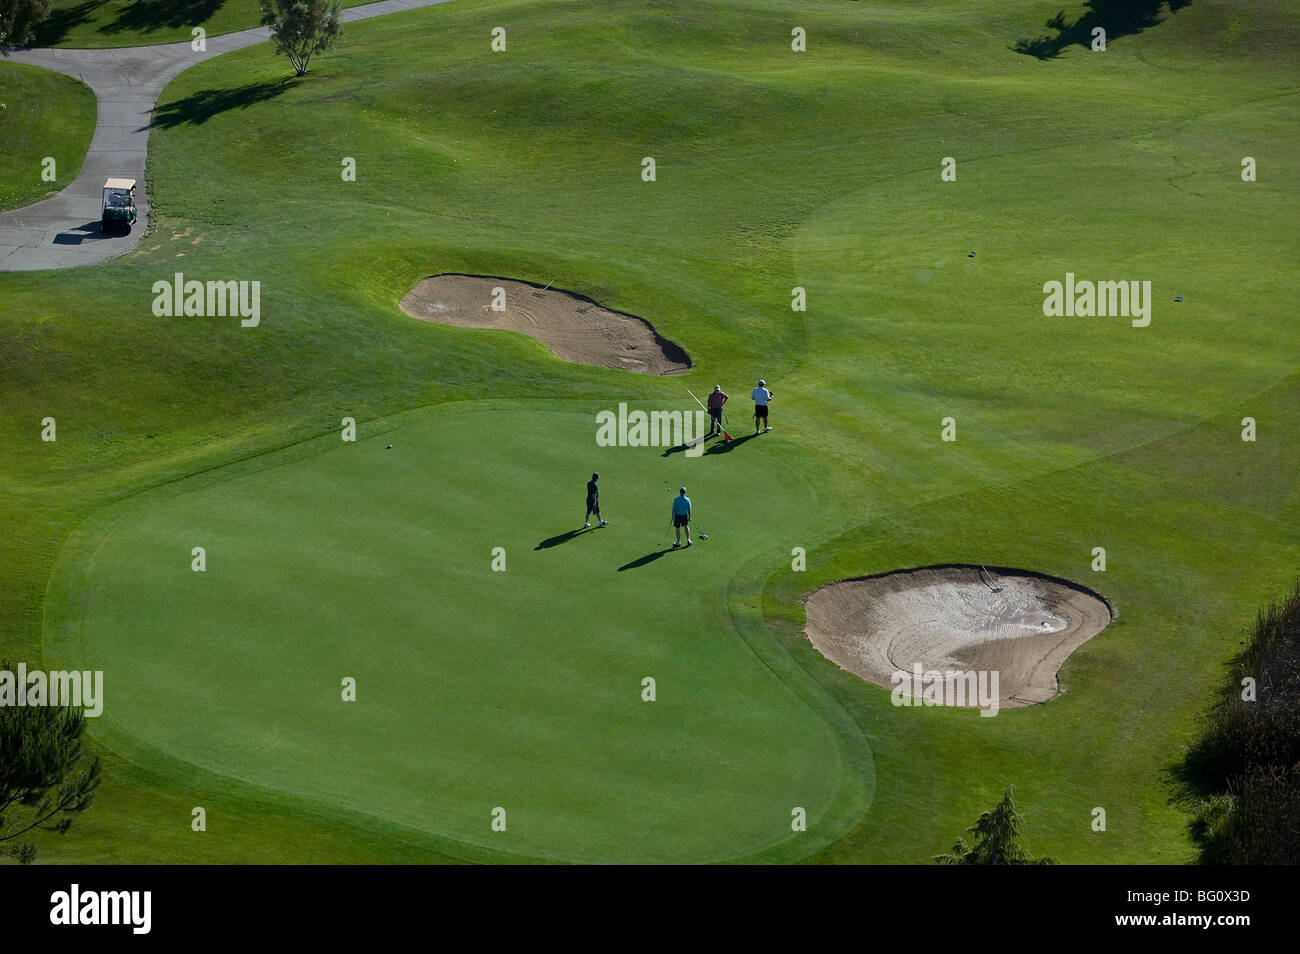 aerial above four golfers putting on green Rooster Run golf course Petaluma California Sonoma County - Stock Image